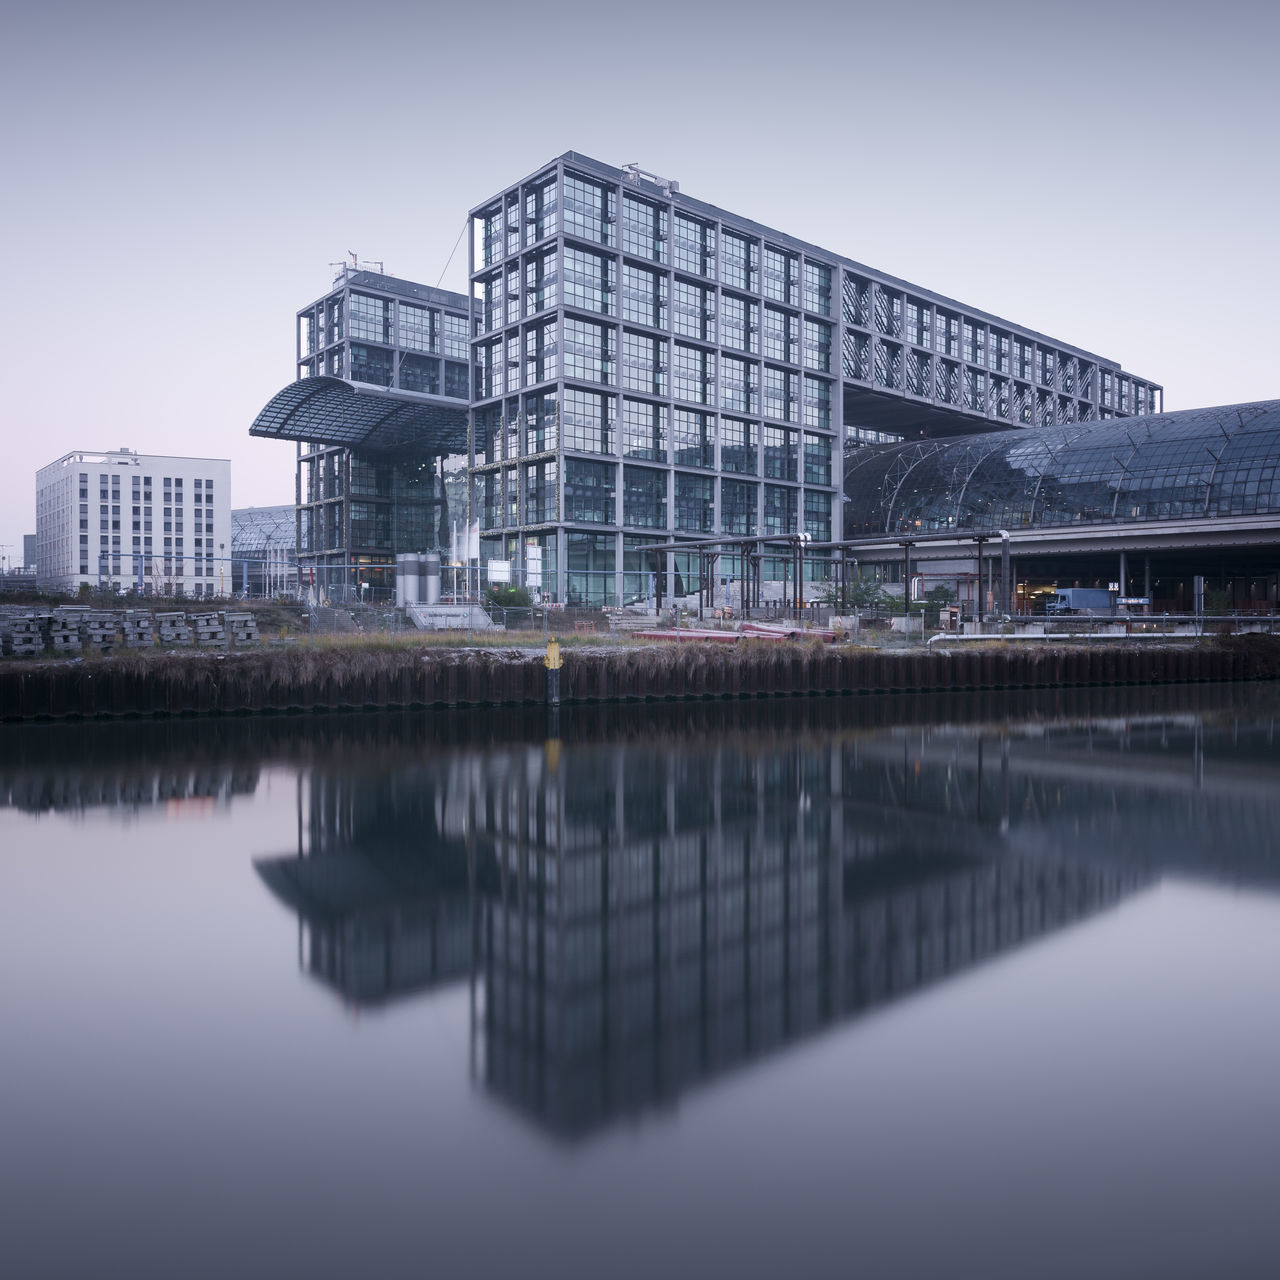 Berlin Central-Station at sunrise Architecture Beauty In Nature Berlin Building Exterior Built Structure Central Station Berlin City Clinical Atmosphere Day Fine Art Photography Germany Hauptbahnhof Longexposure Modern Modern Architecture Muted Colors No People Outdoors Philipp Dase Reflection Reflections In The Water Skyscraper Subtle Colors Water Waterfront